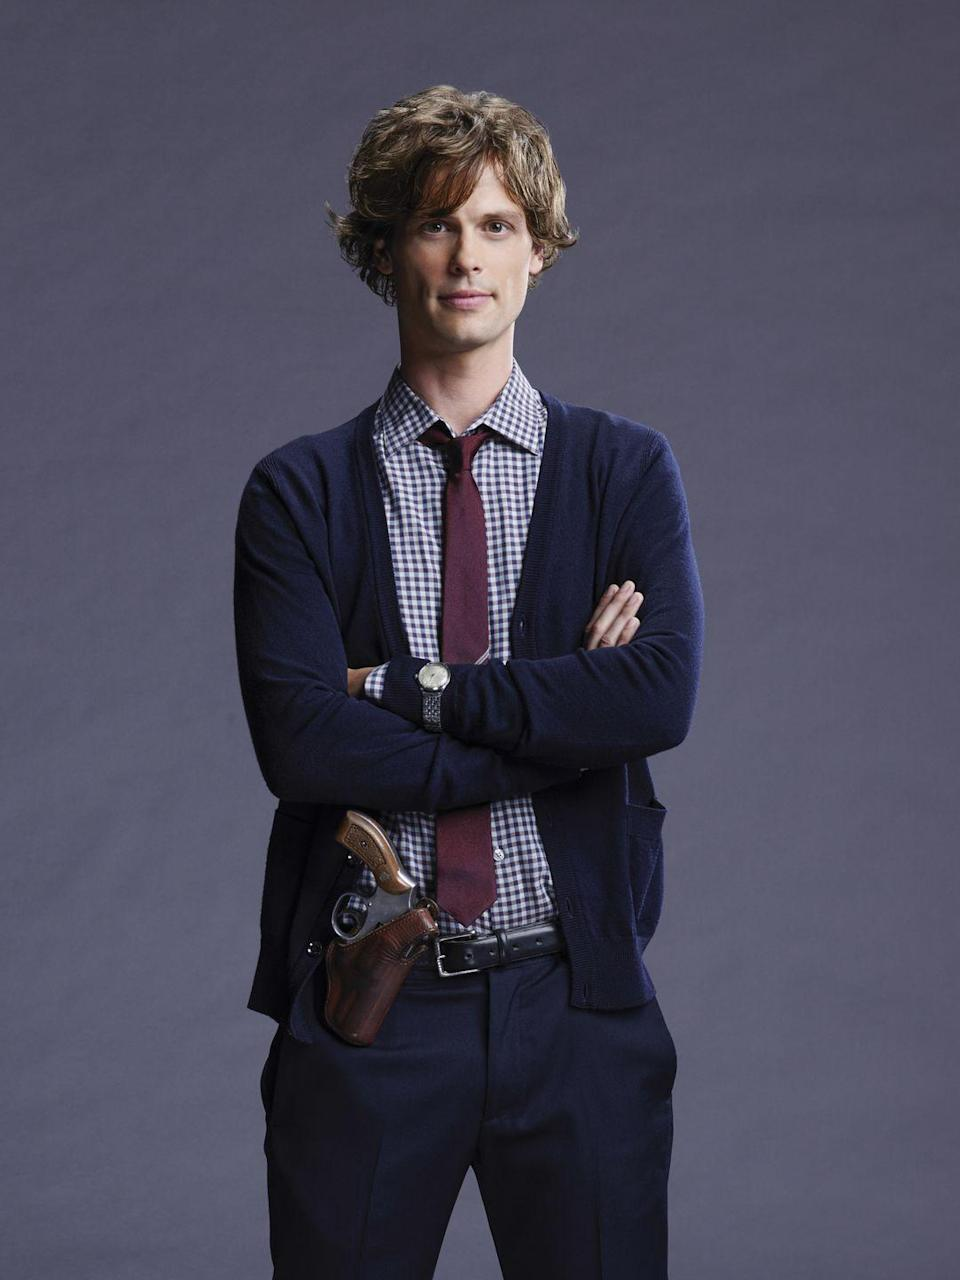 """<p>Dr. Spencer """"Spence"""" Reid is a supervisory special agent with the BAU and one of <em>Criminal Minds</em> most long-standing characters. The fast-talking genius is known for his high IQ, statistics skills, and his ability to read 20,000 words per minute. Basically, if you're after a killer, Reid is someone you definitely want on your team. Just don't get him started on one of his rants!</p><p>Matthew Gray Gubler has appeared in <em>500 Days of Summer, RV, Alvin and the Chipmunks</em>, and more films. He's also had success directing several episodes of <em>Criminal Minds, </em>as well as some music videos for the band, The Killers.</p>"""